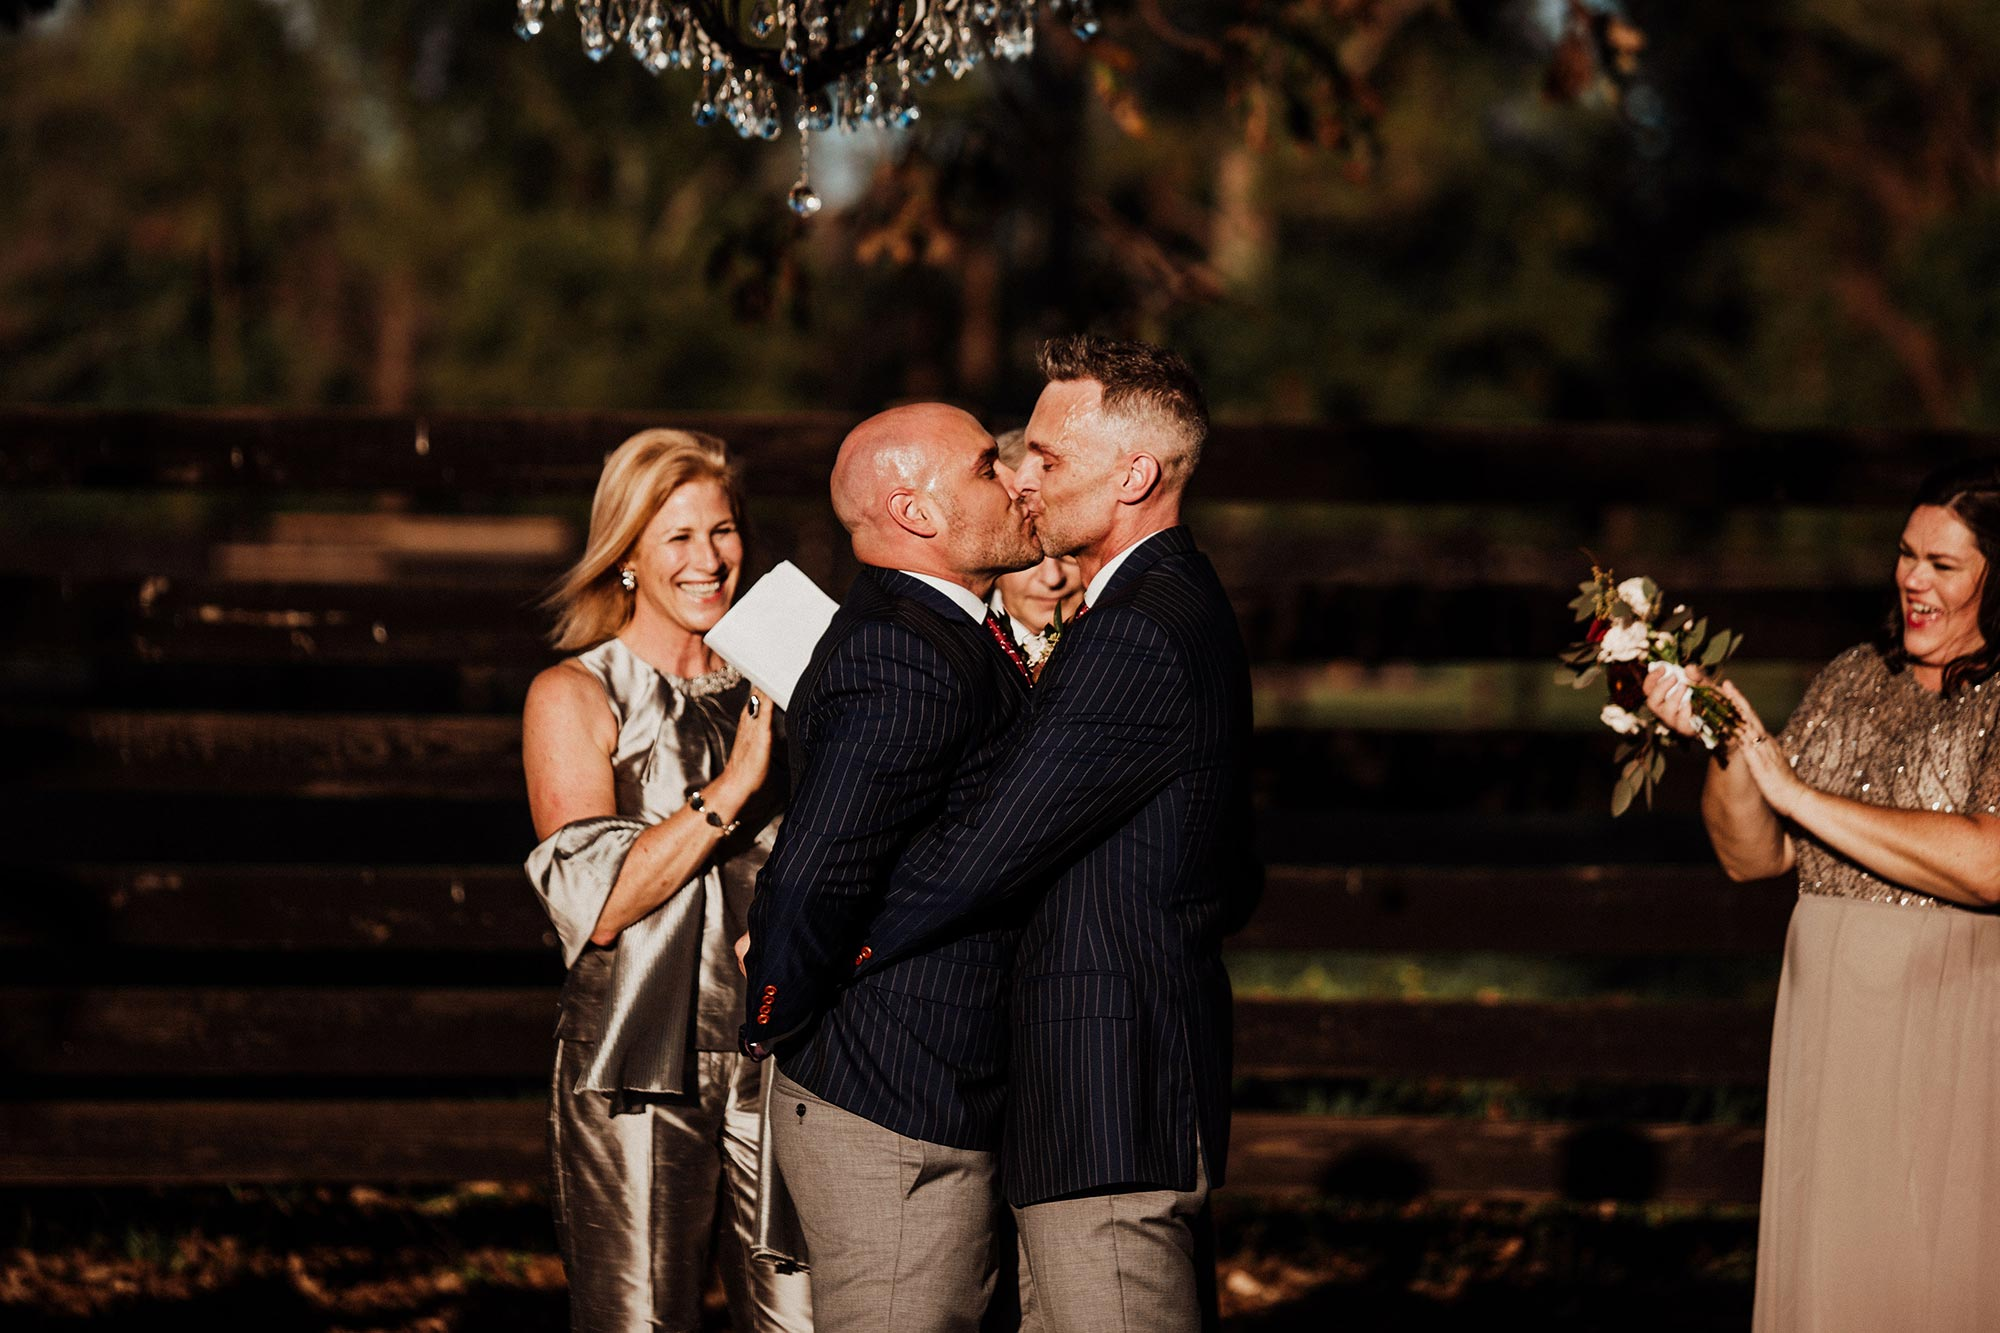 LGBTQ Louisville Kentucky Wedding at Hermitage Farm Crystal Ludwick Photo ceremony kiss